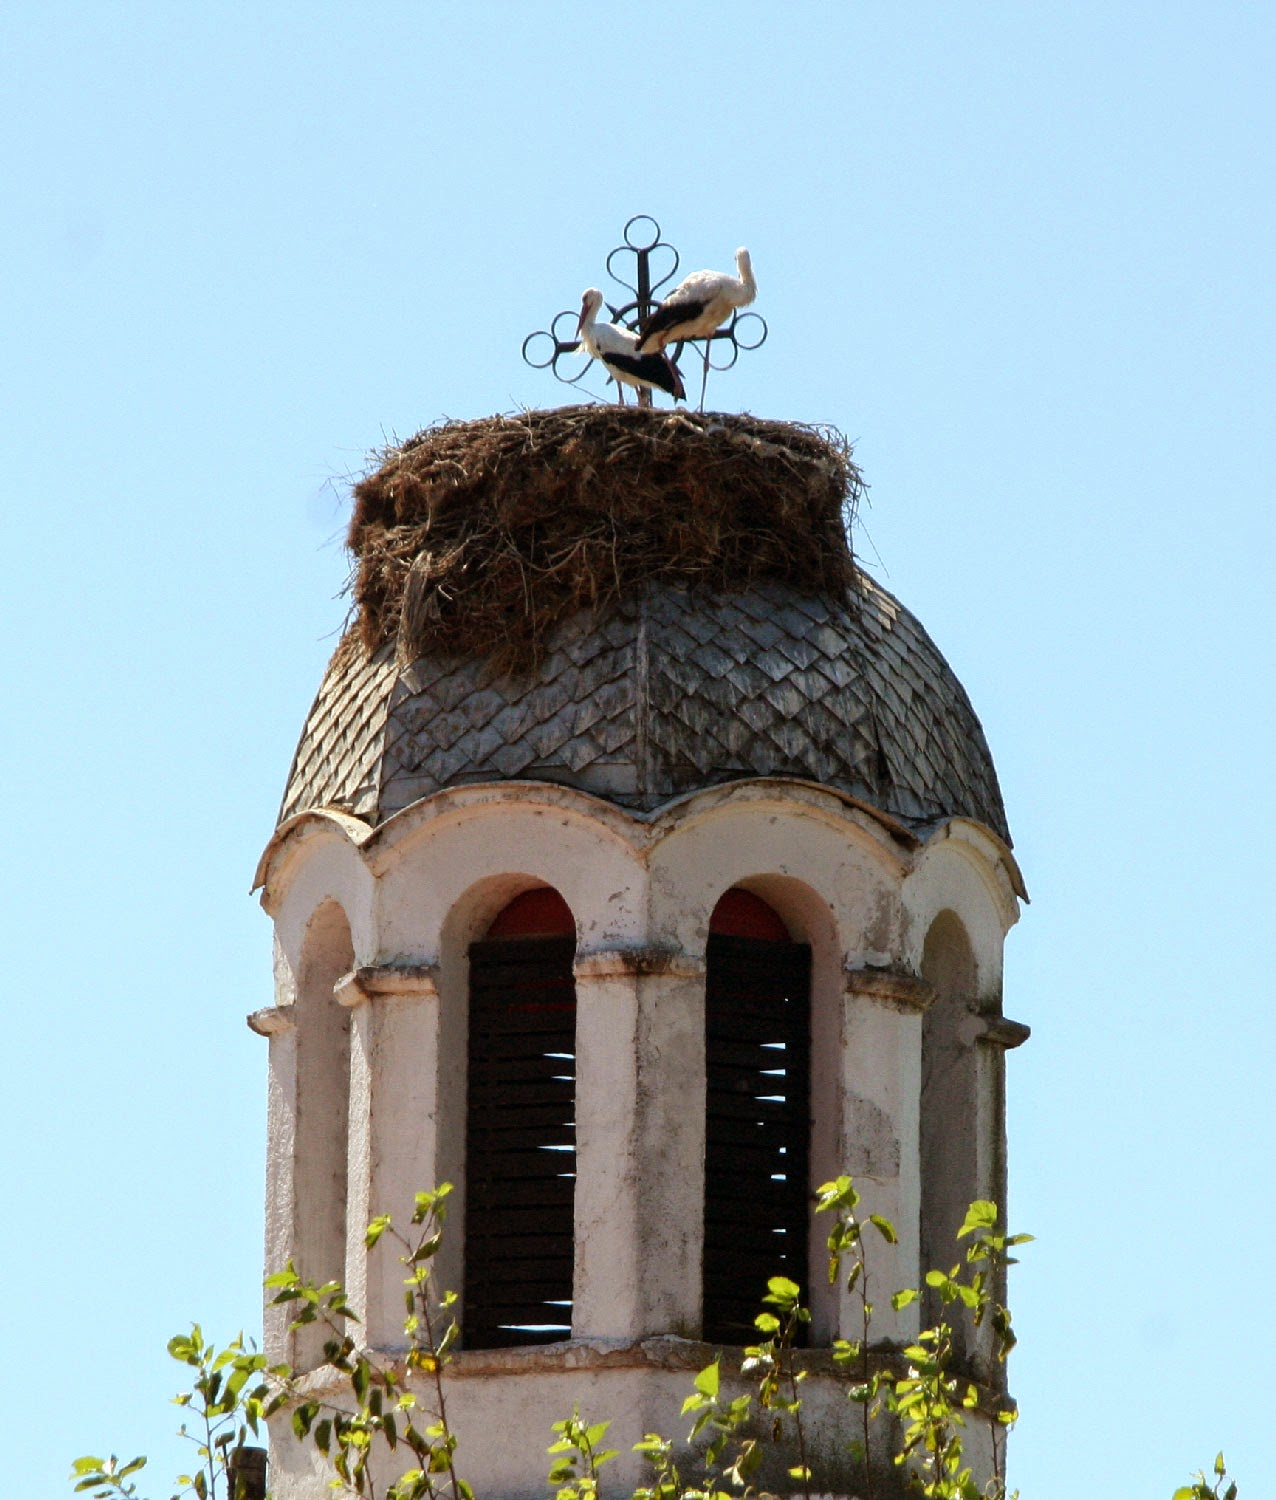 The church storks nest